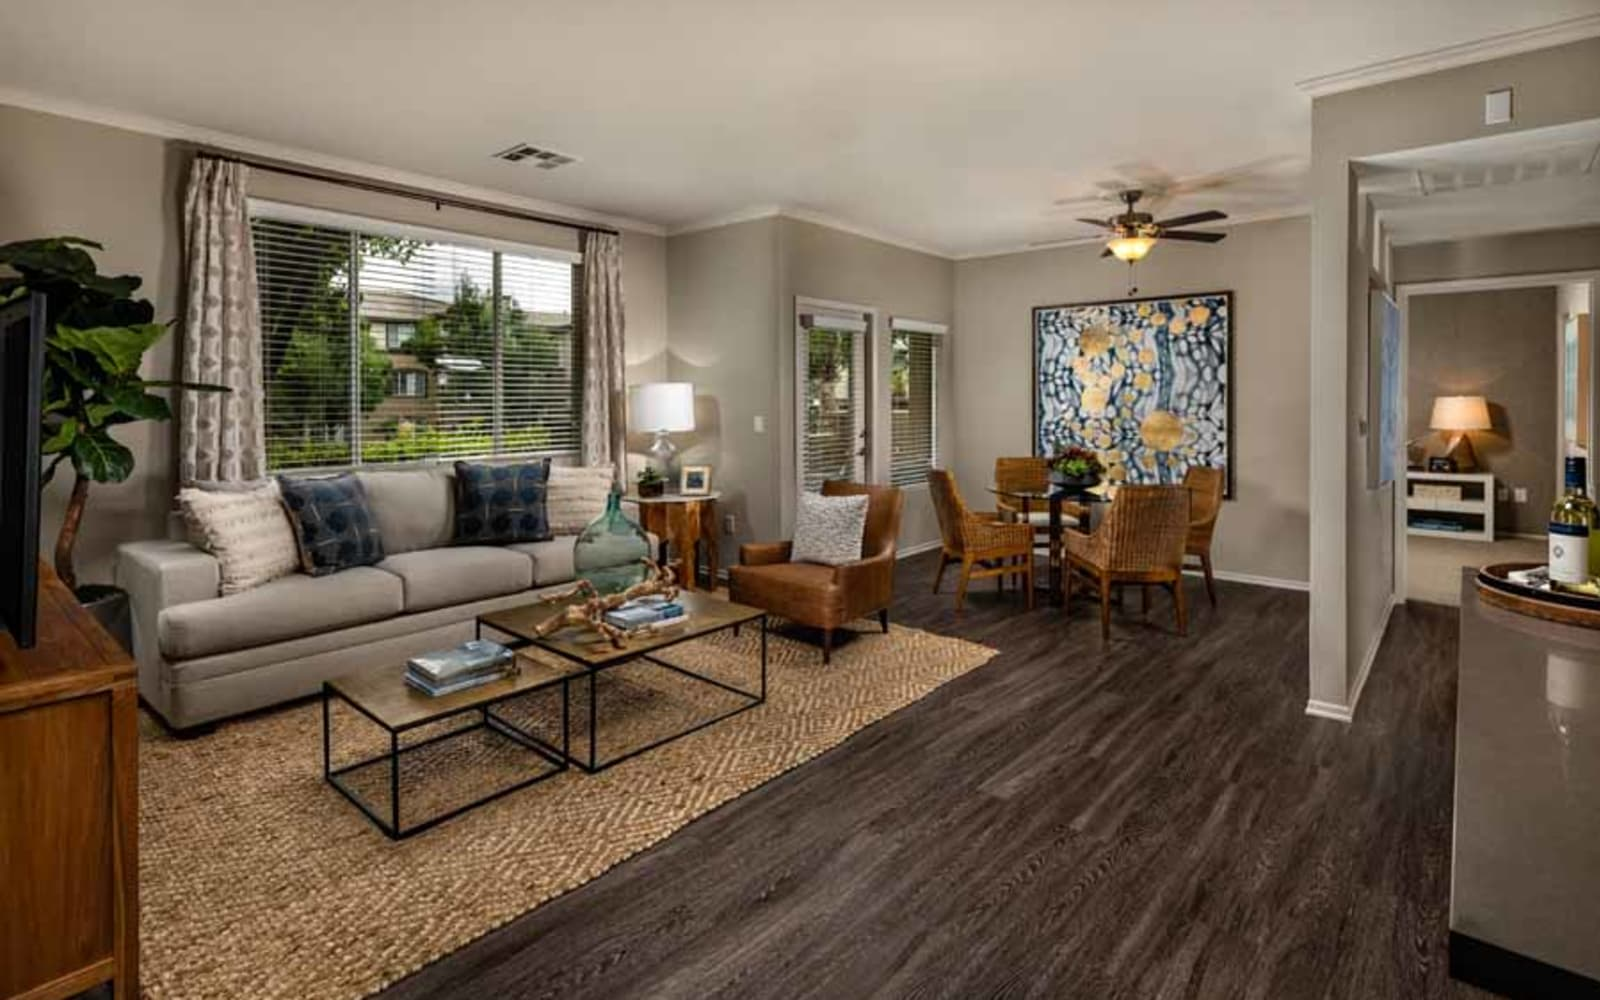 A furnished apartment living room at Castlerock at Sycamore Highlands in Riverside, California